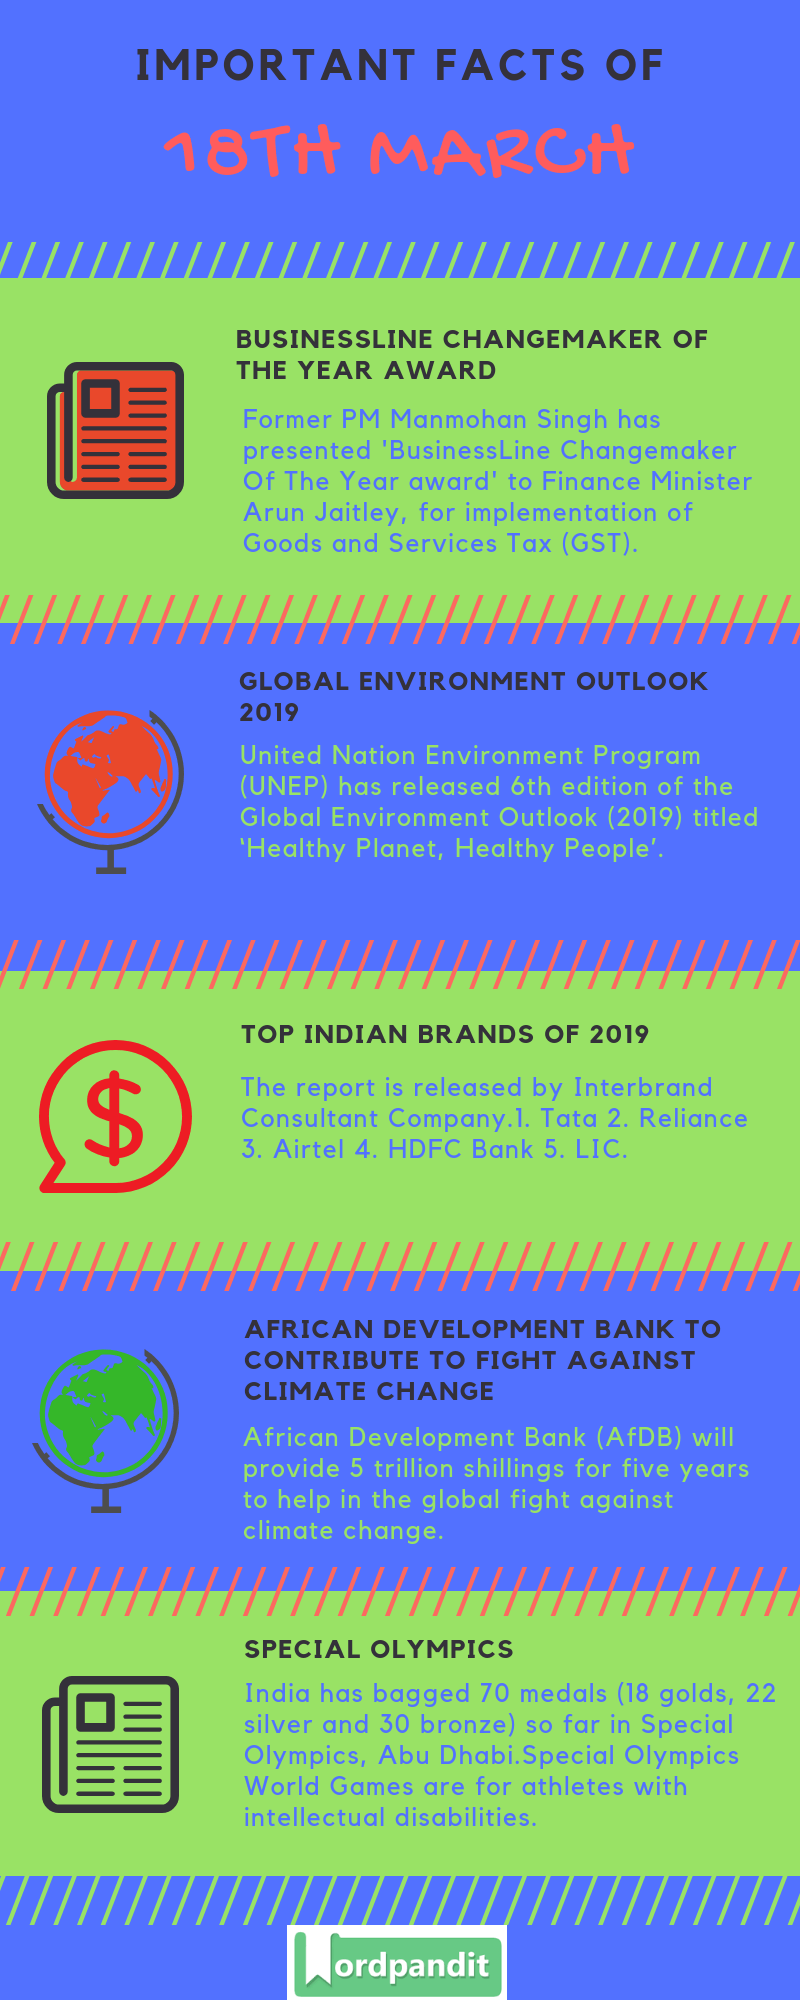 Daily Current Affairs 18 March 2019 Current Affairs Quiz 18 March 2019 Current Affairs Infographic